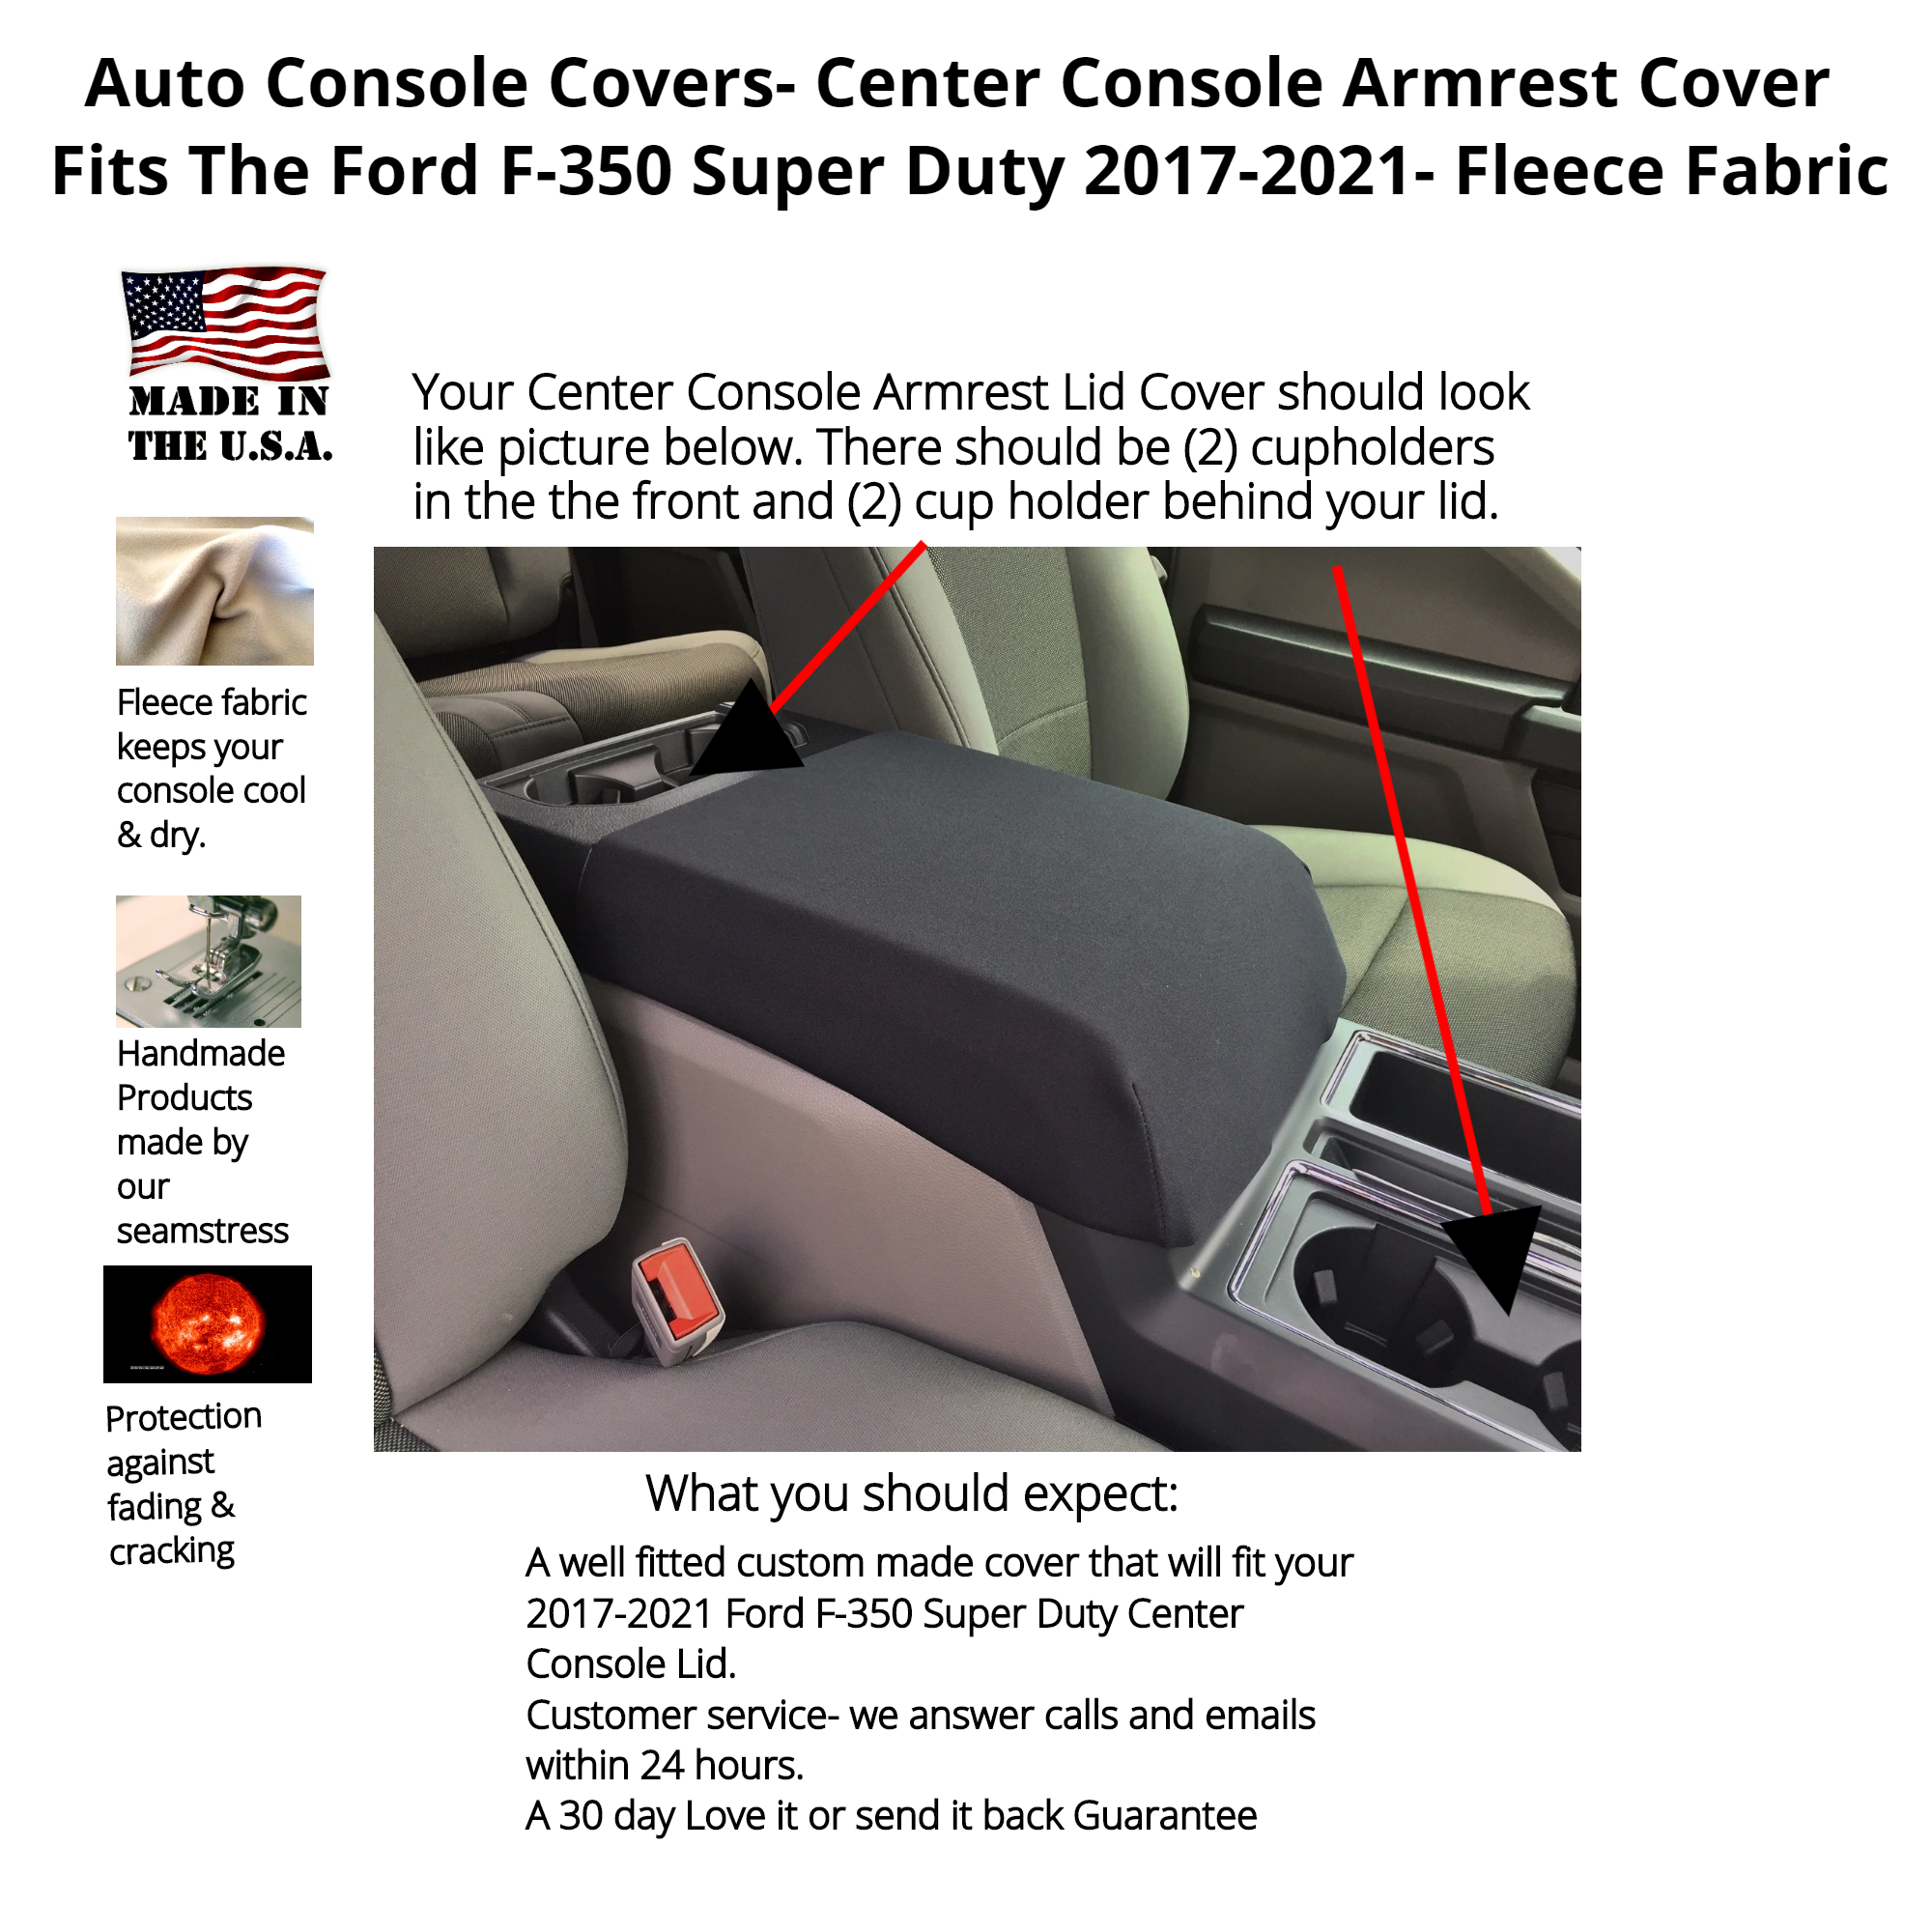 Buy Fleece Center Console Armrest Cover fits the Ford F-350 Super Duty 2017-2021